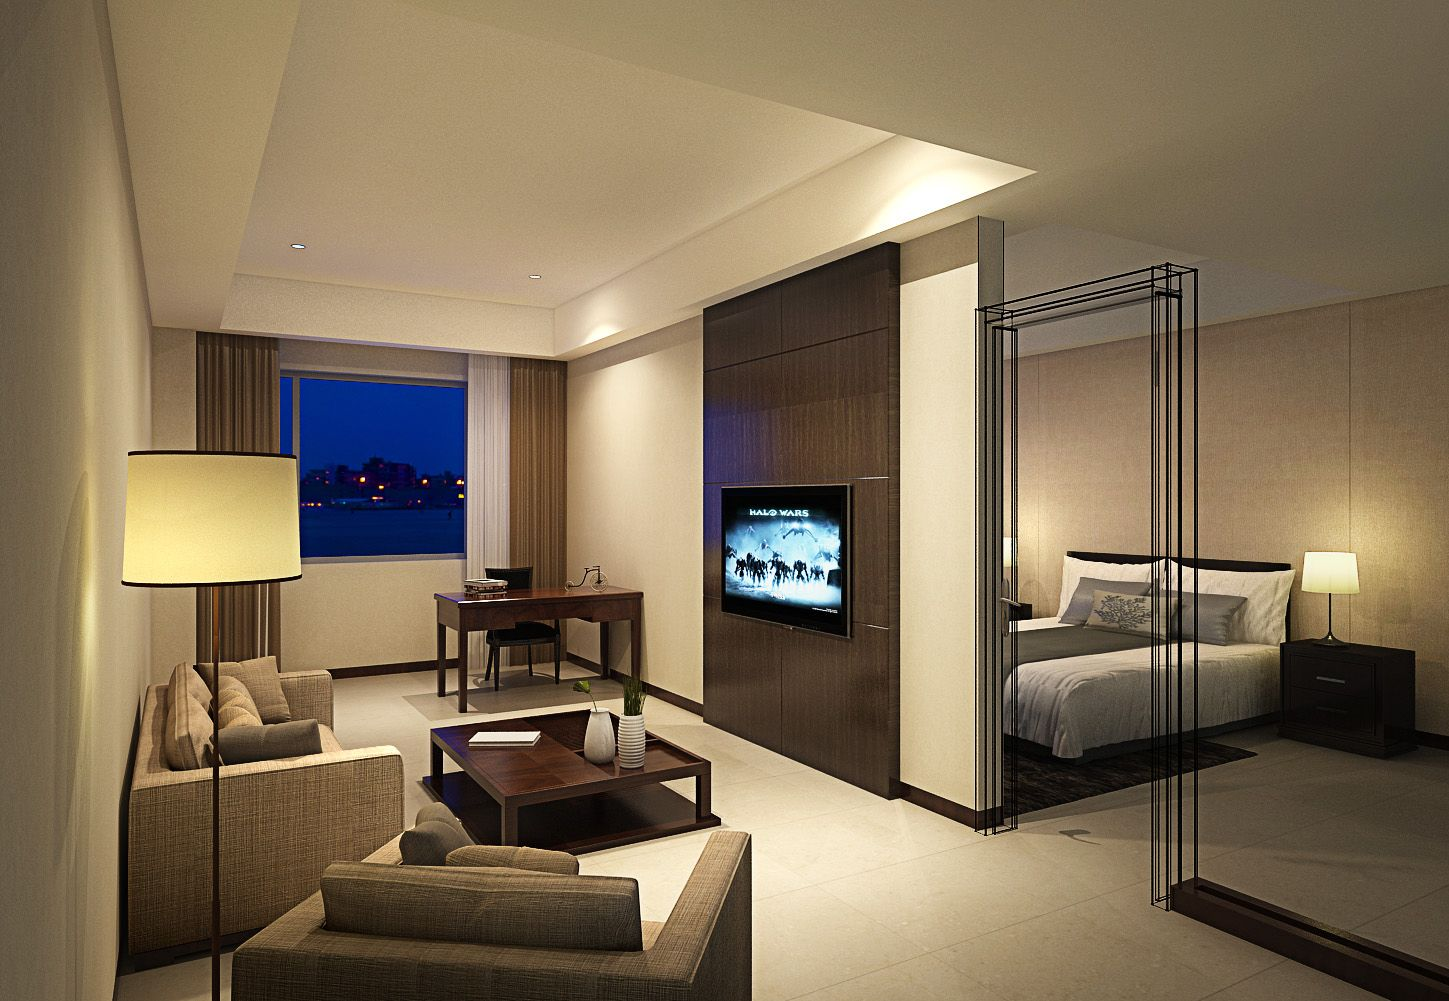 Pin by XDD on 会议室 meetting room Home decor, Home, Furniture